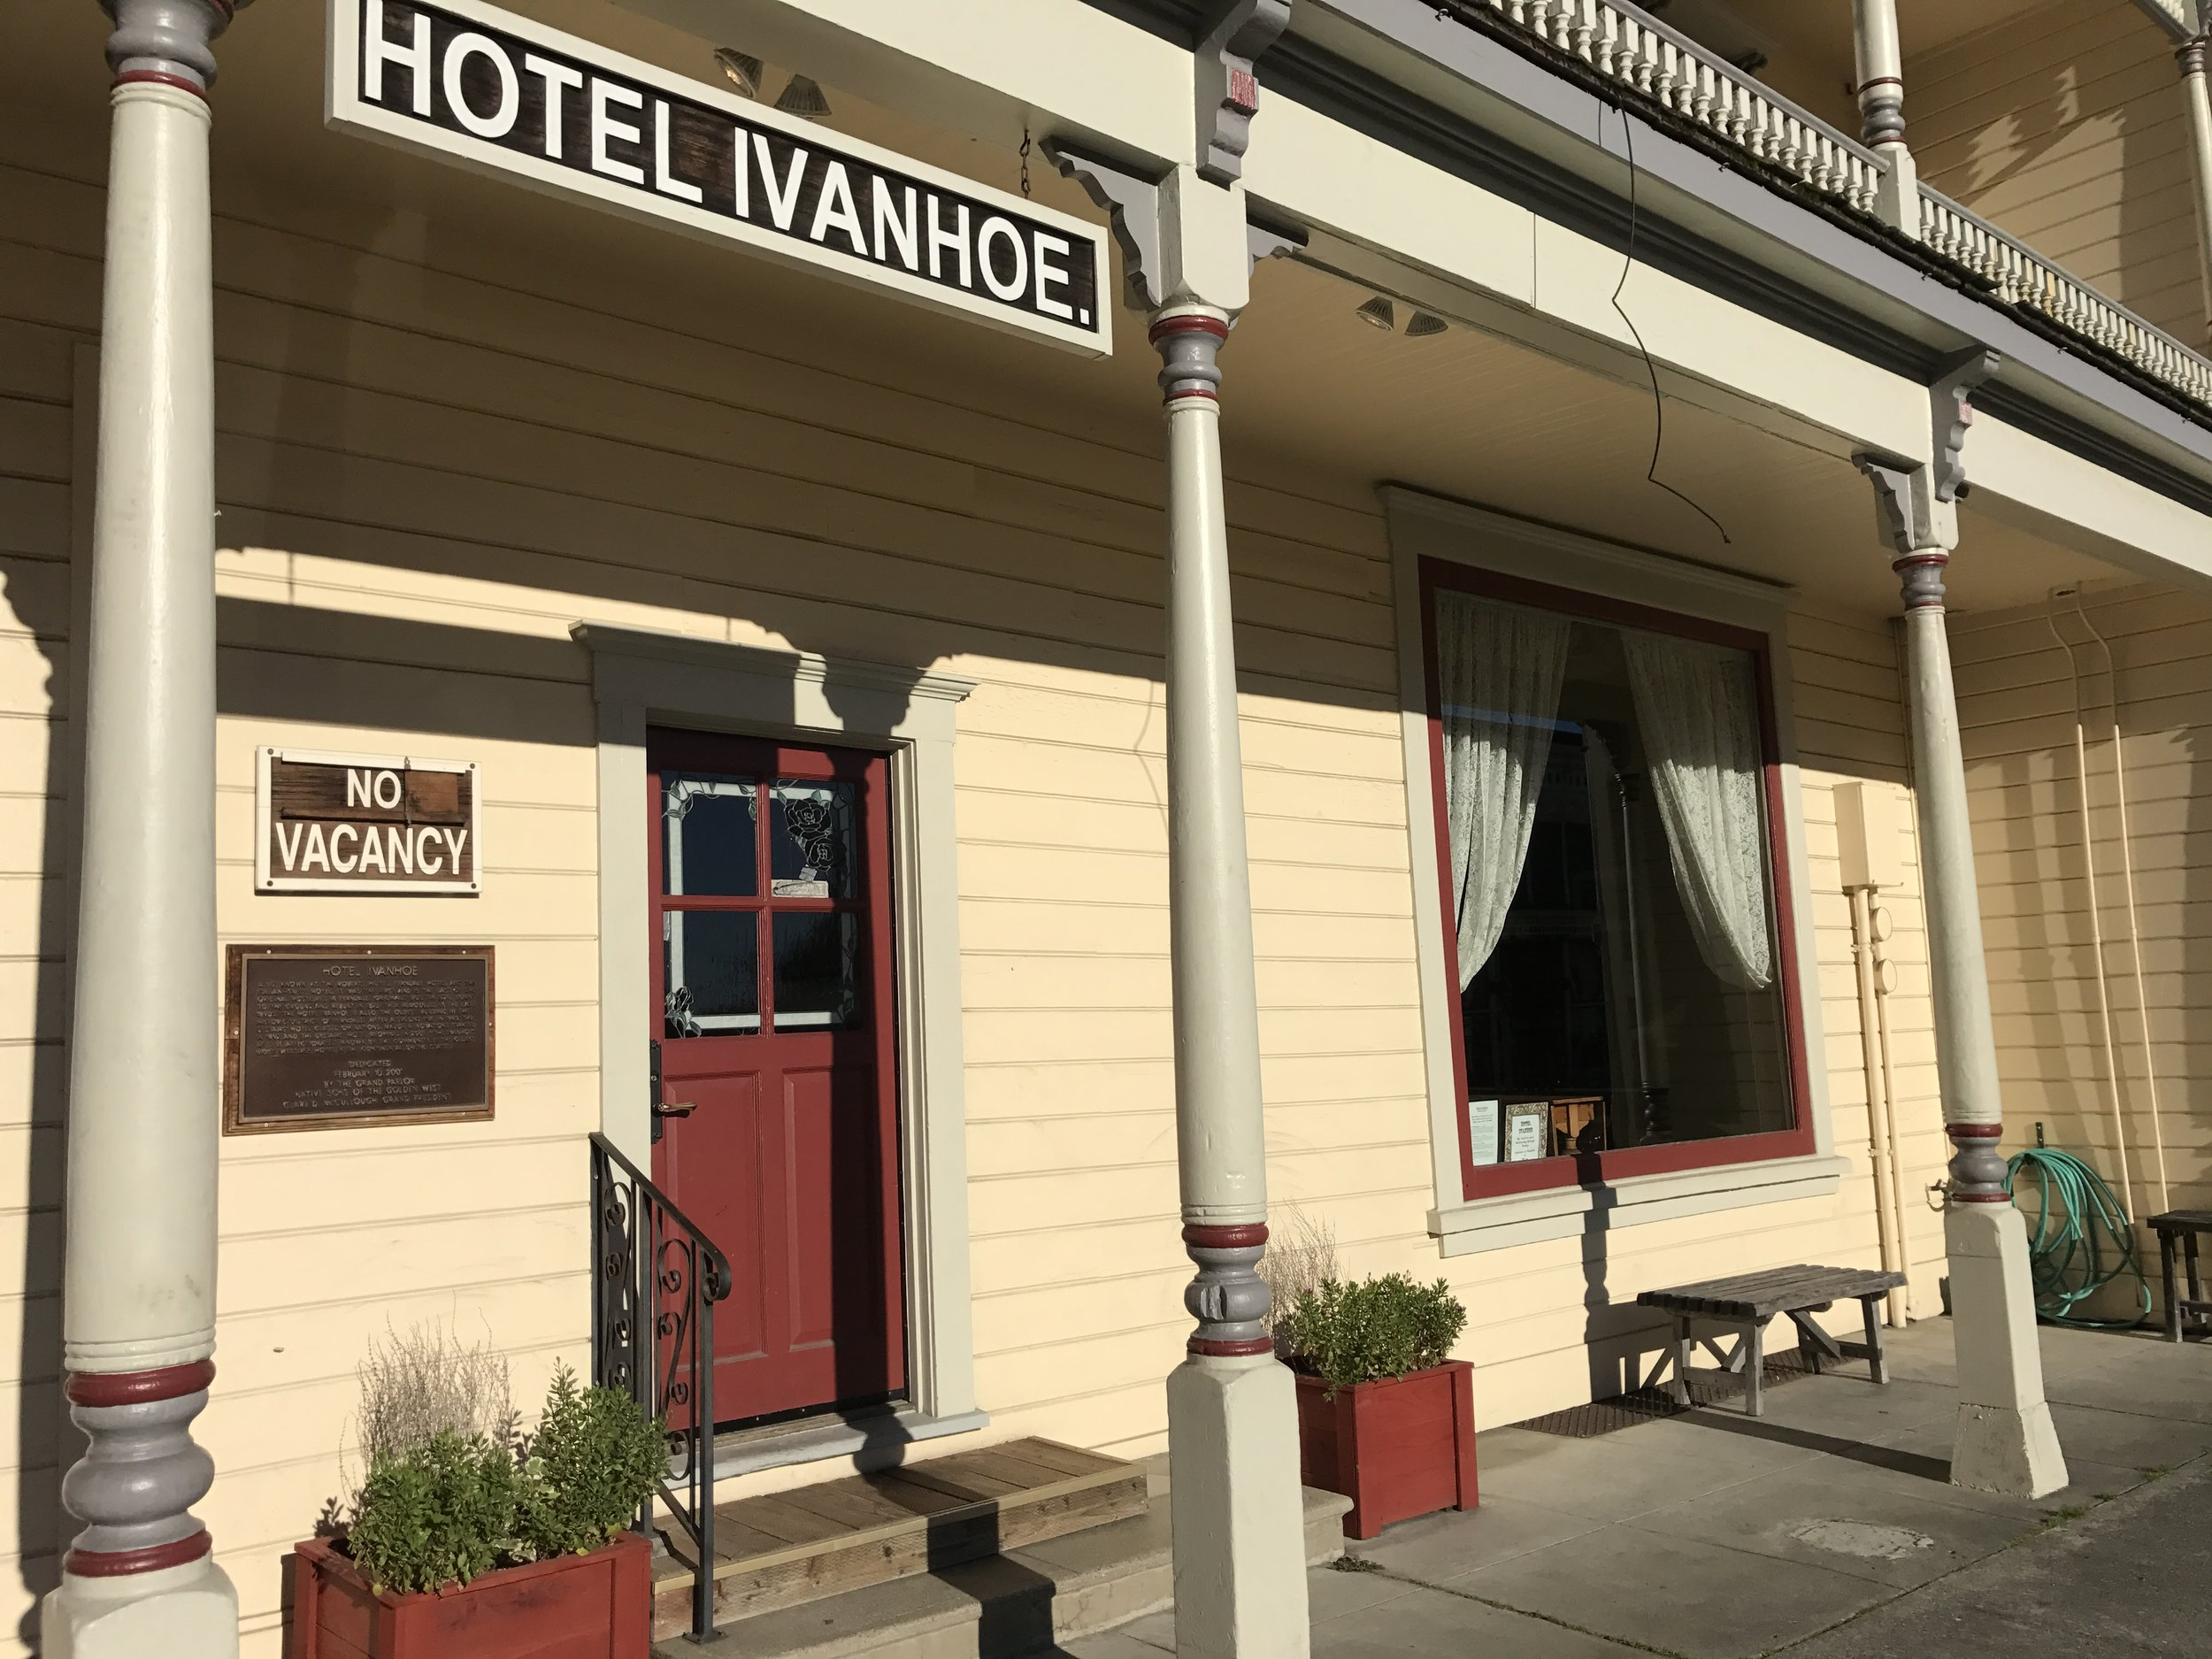 Hotel Ivanhoe in Ferndale, California